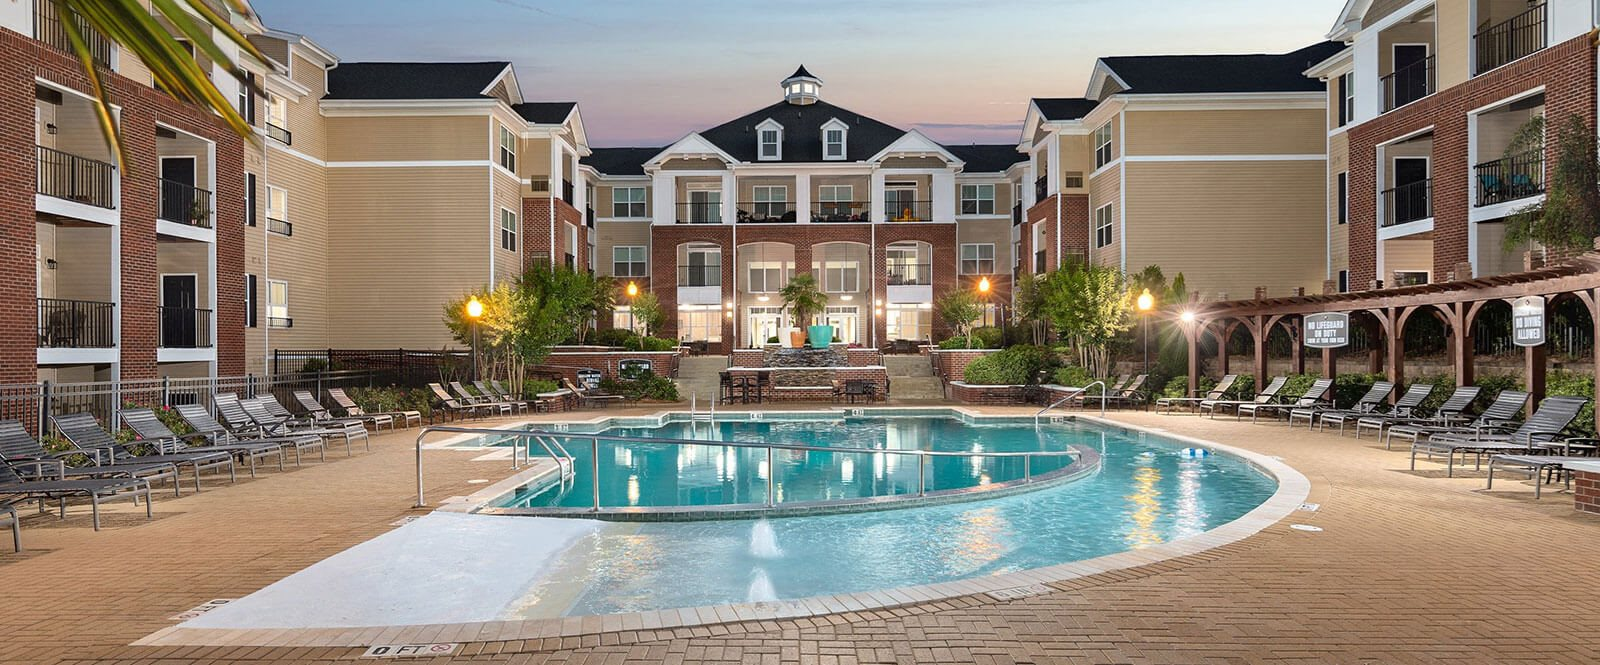 Invigorating Zero Entry Pool at Abberly Village Apartment Homes by HHHunt, West Columbia, SC